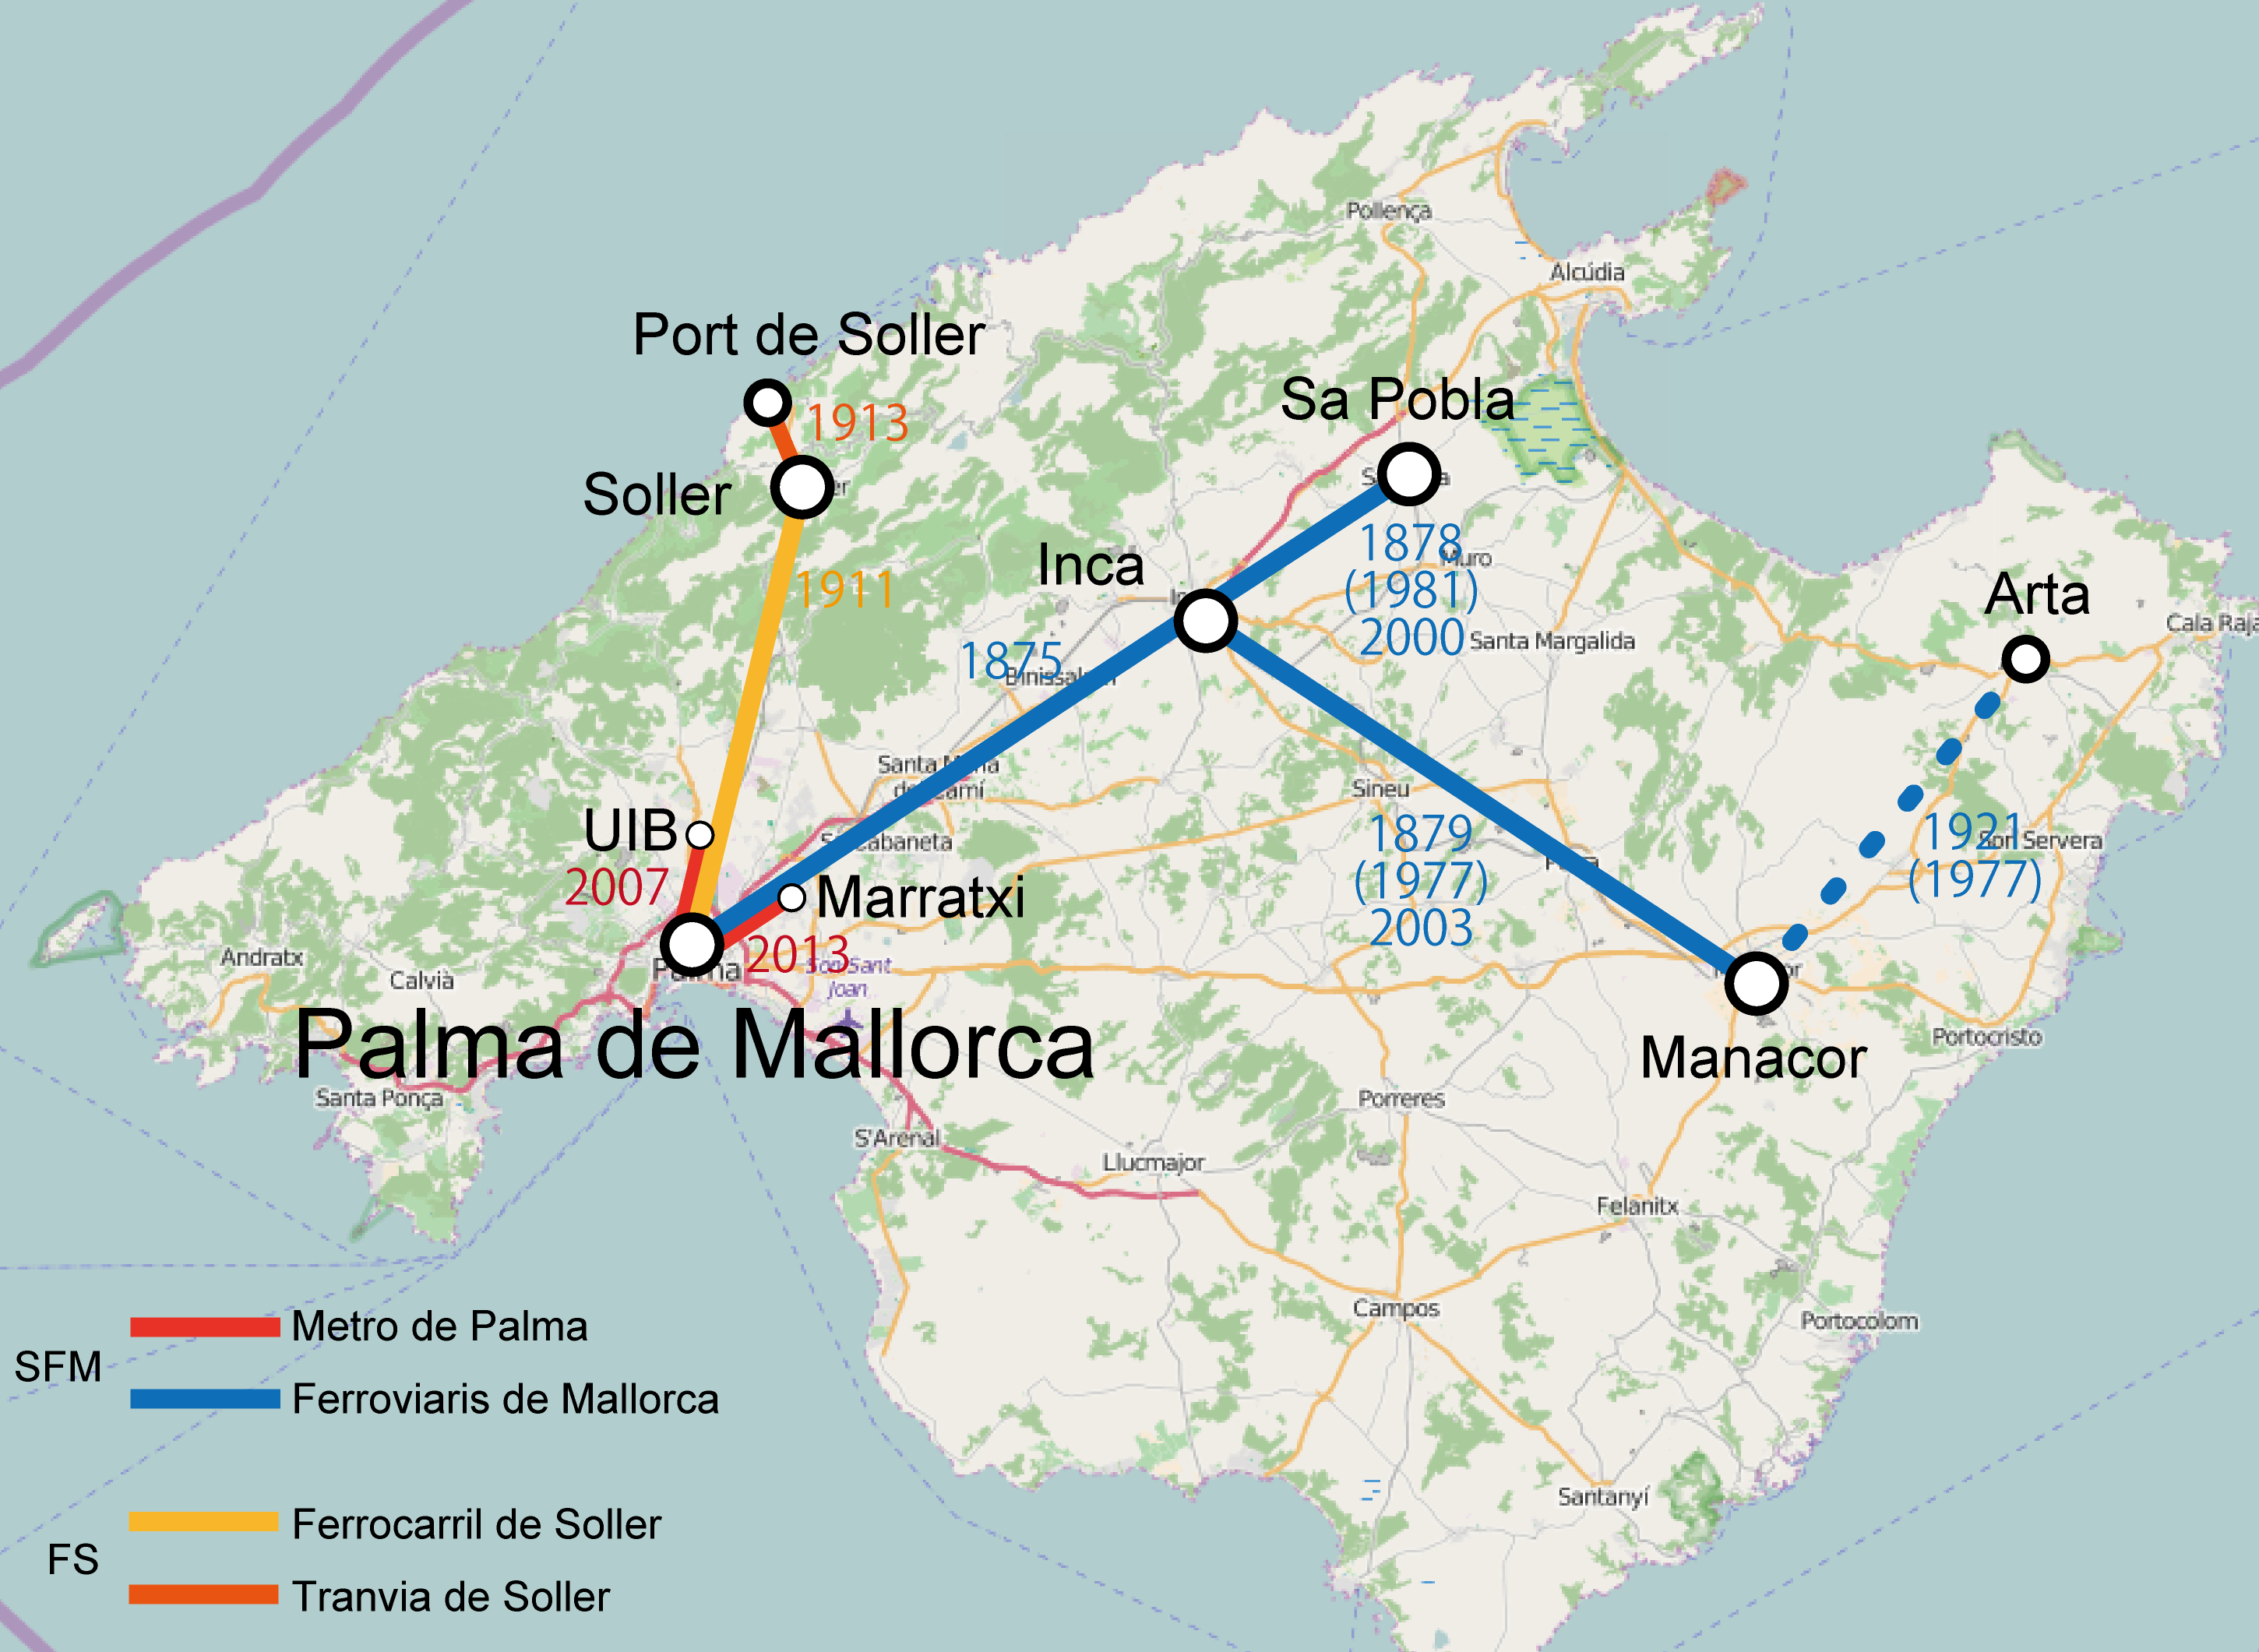 Map Of Spain And Mallorca.File Spain Mallorca Island Railway Network Png Wikipedia